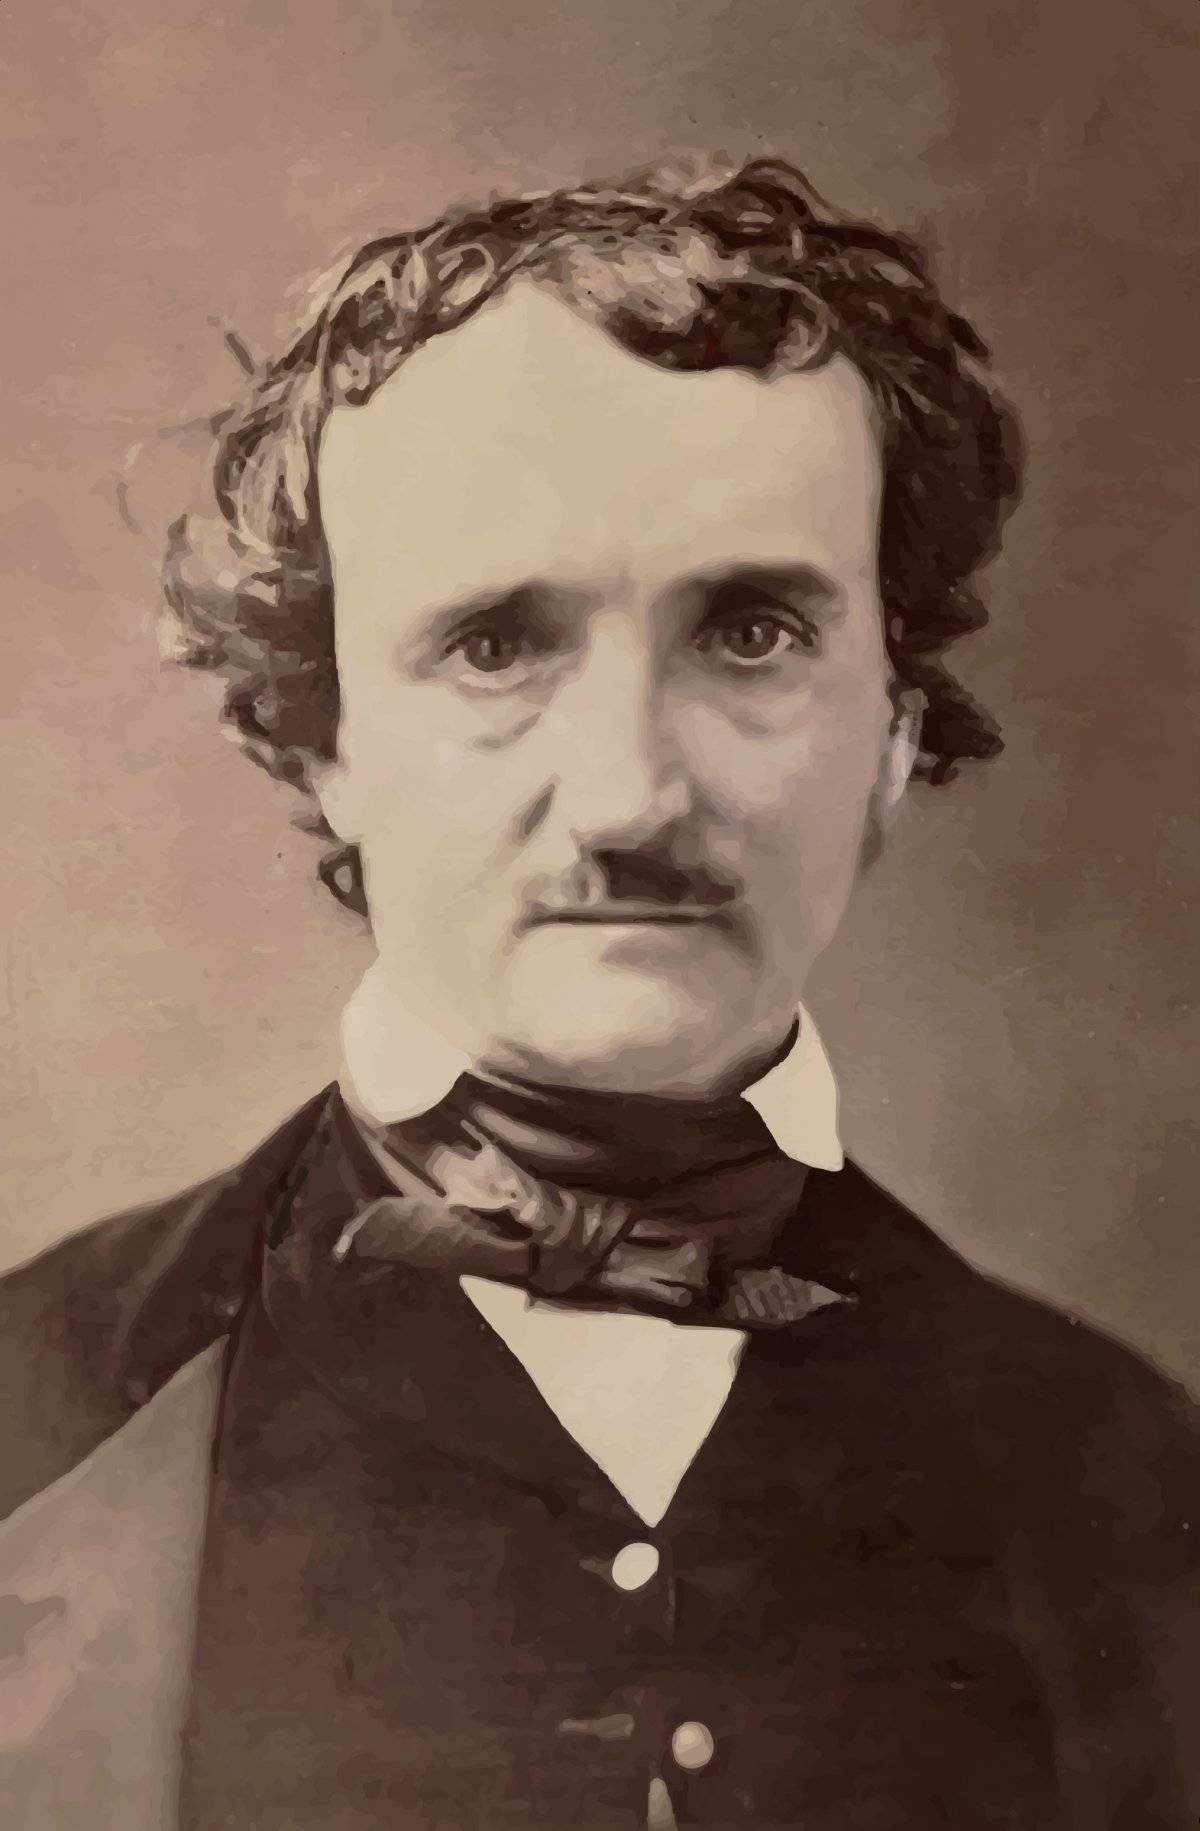 edgarallanpoe1855.jpg